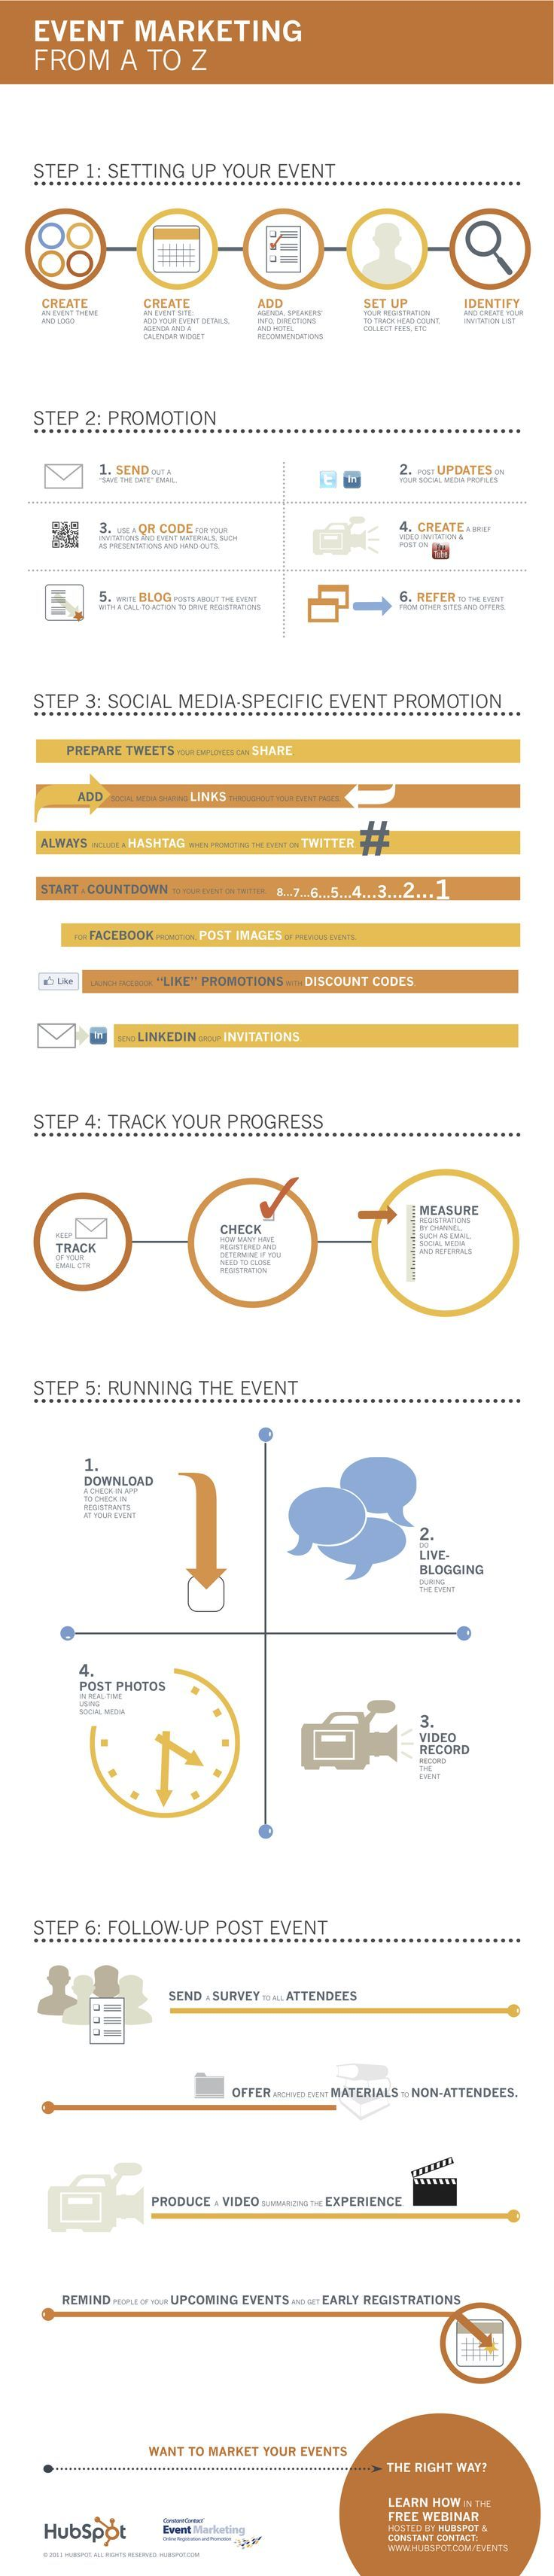 Event Marketing A-Z #Infographic How to market your next event from start to finish #CSUDH www.csudh.edu...